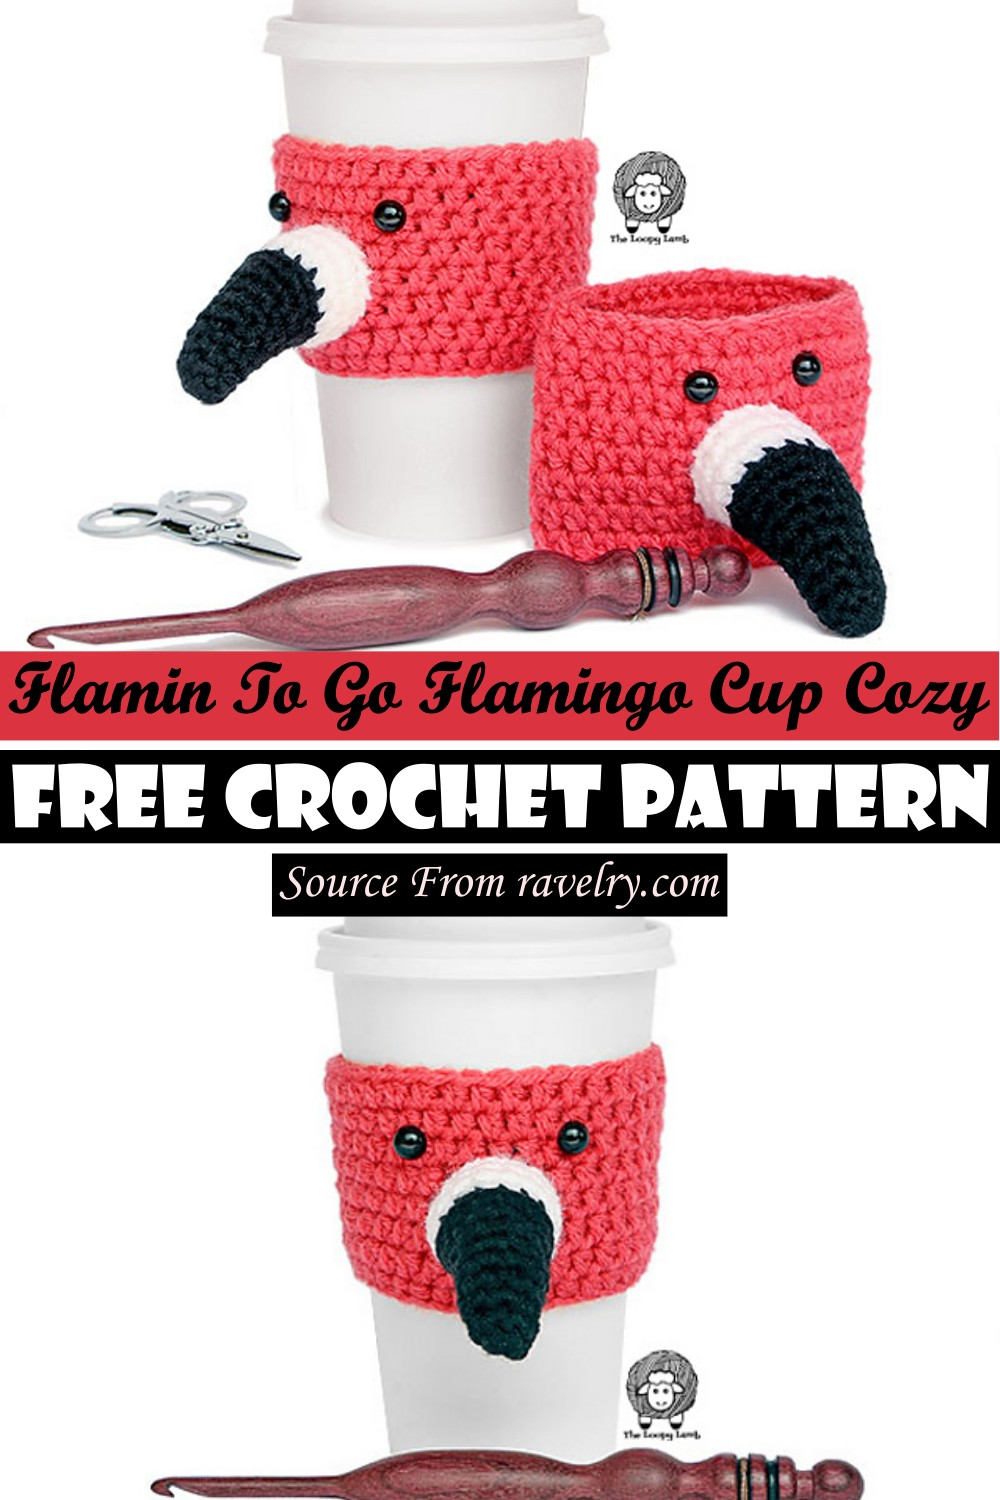 Free Crochet Flamin To Go Flamingo Cup Cozy Pattern